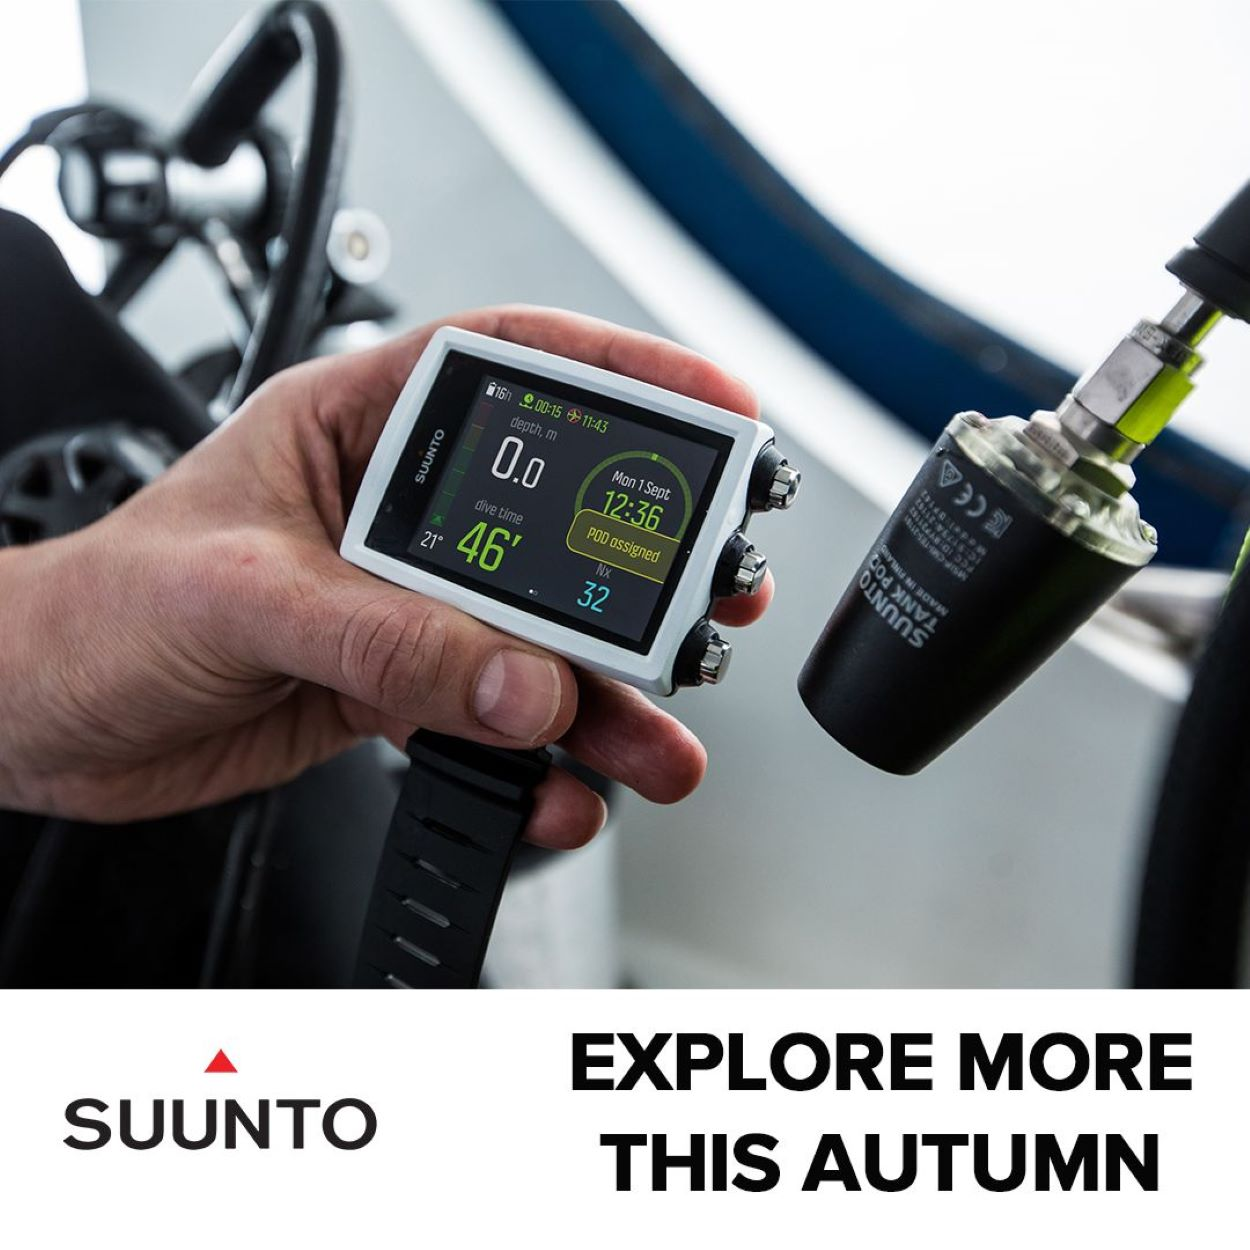 SUUNTO EON CORE AND TANK POD AUTUNM OFFER